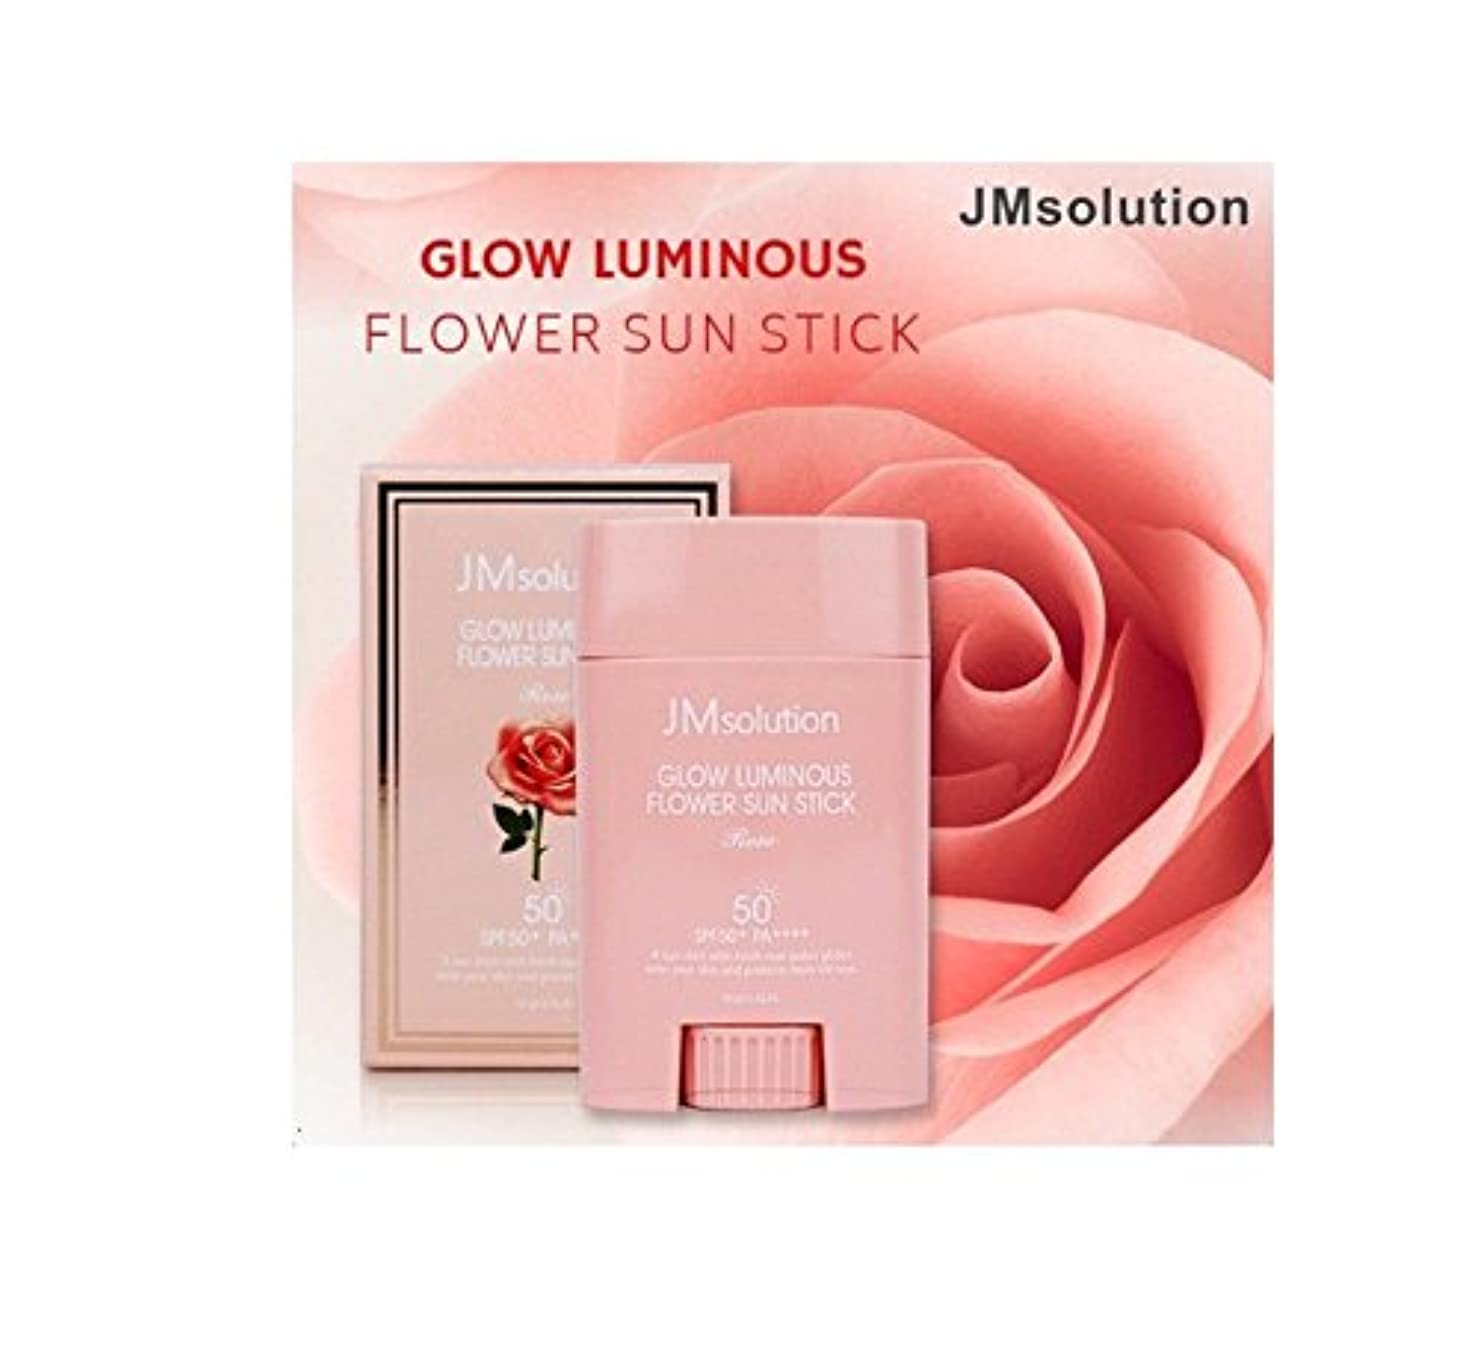 ごめんなさいスリチンモイナプキンJM Solution Glow Luminous Flower Sun Stick Rose 21g (spf50 PA) 光る輝く花Sun Stick Rose